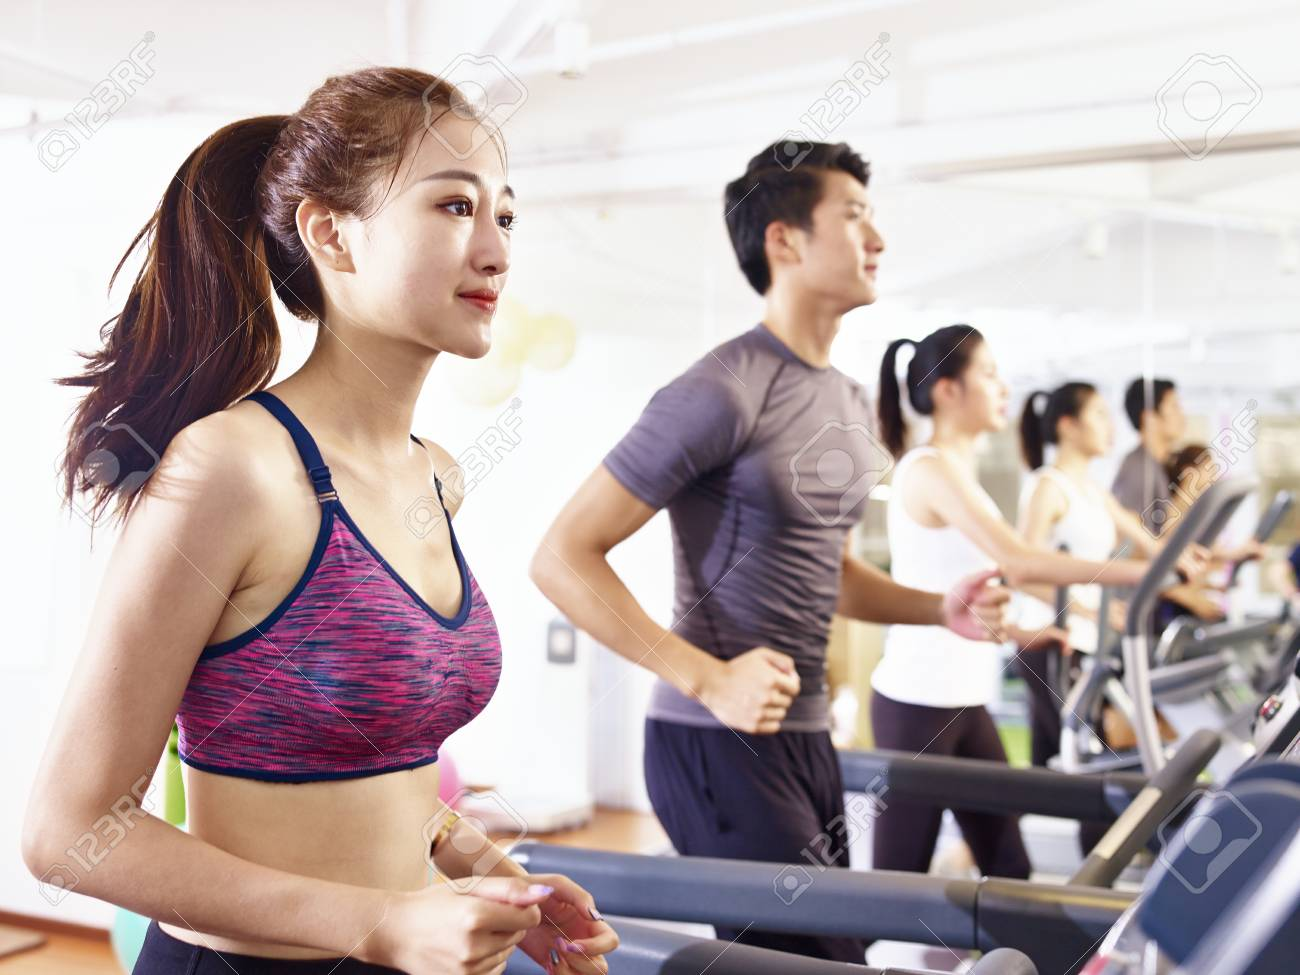 young asian adult working out on treadmill. - 90955897